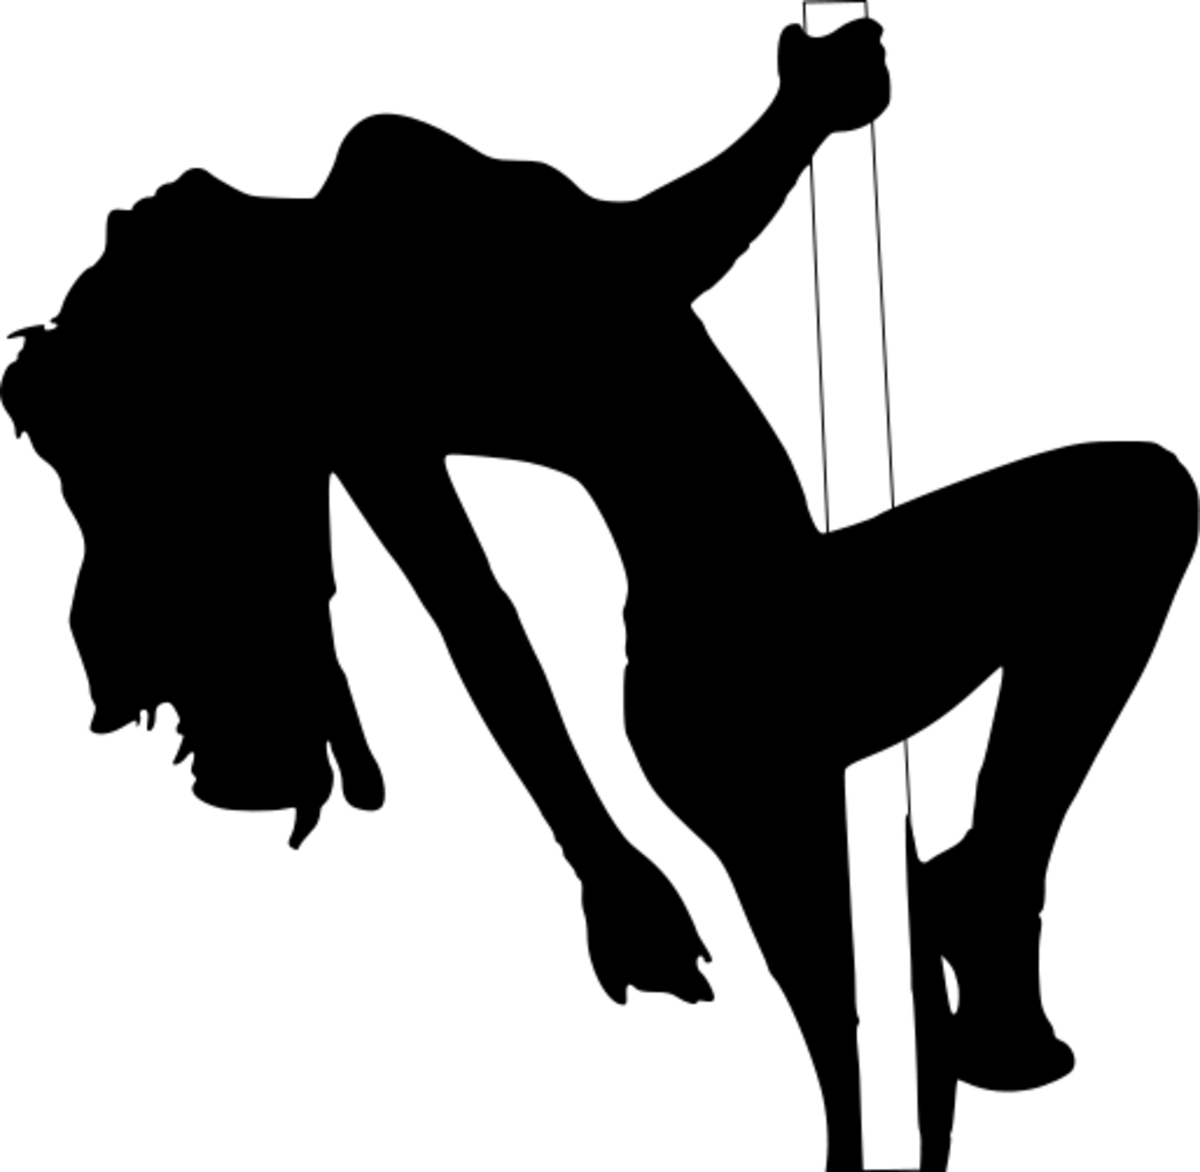 A silhouette of Stripper on a Pole